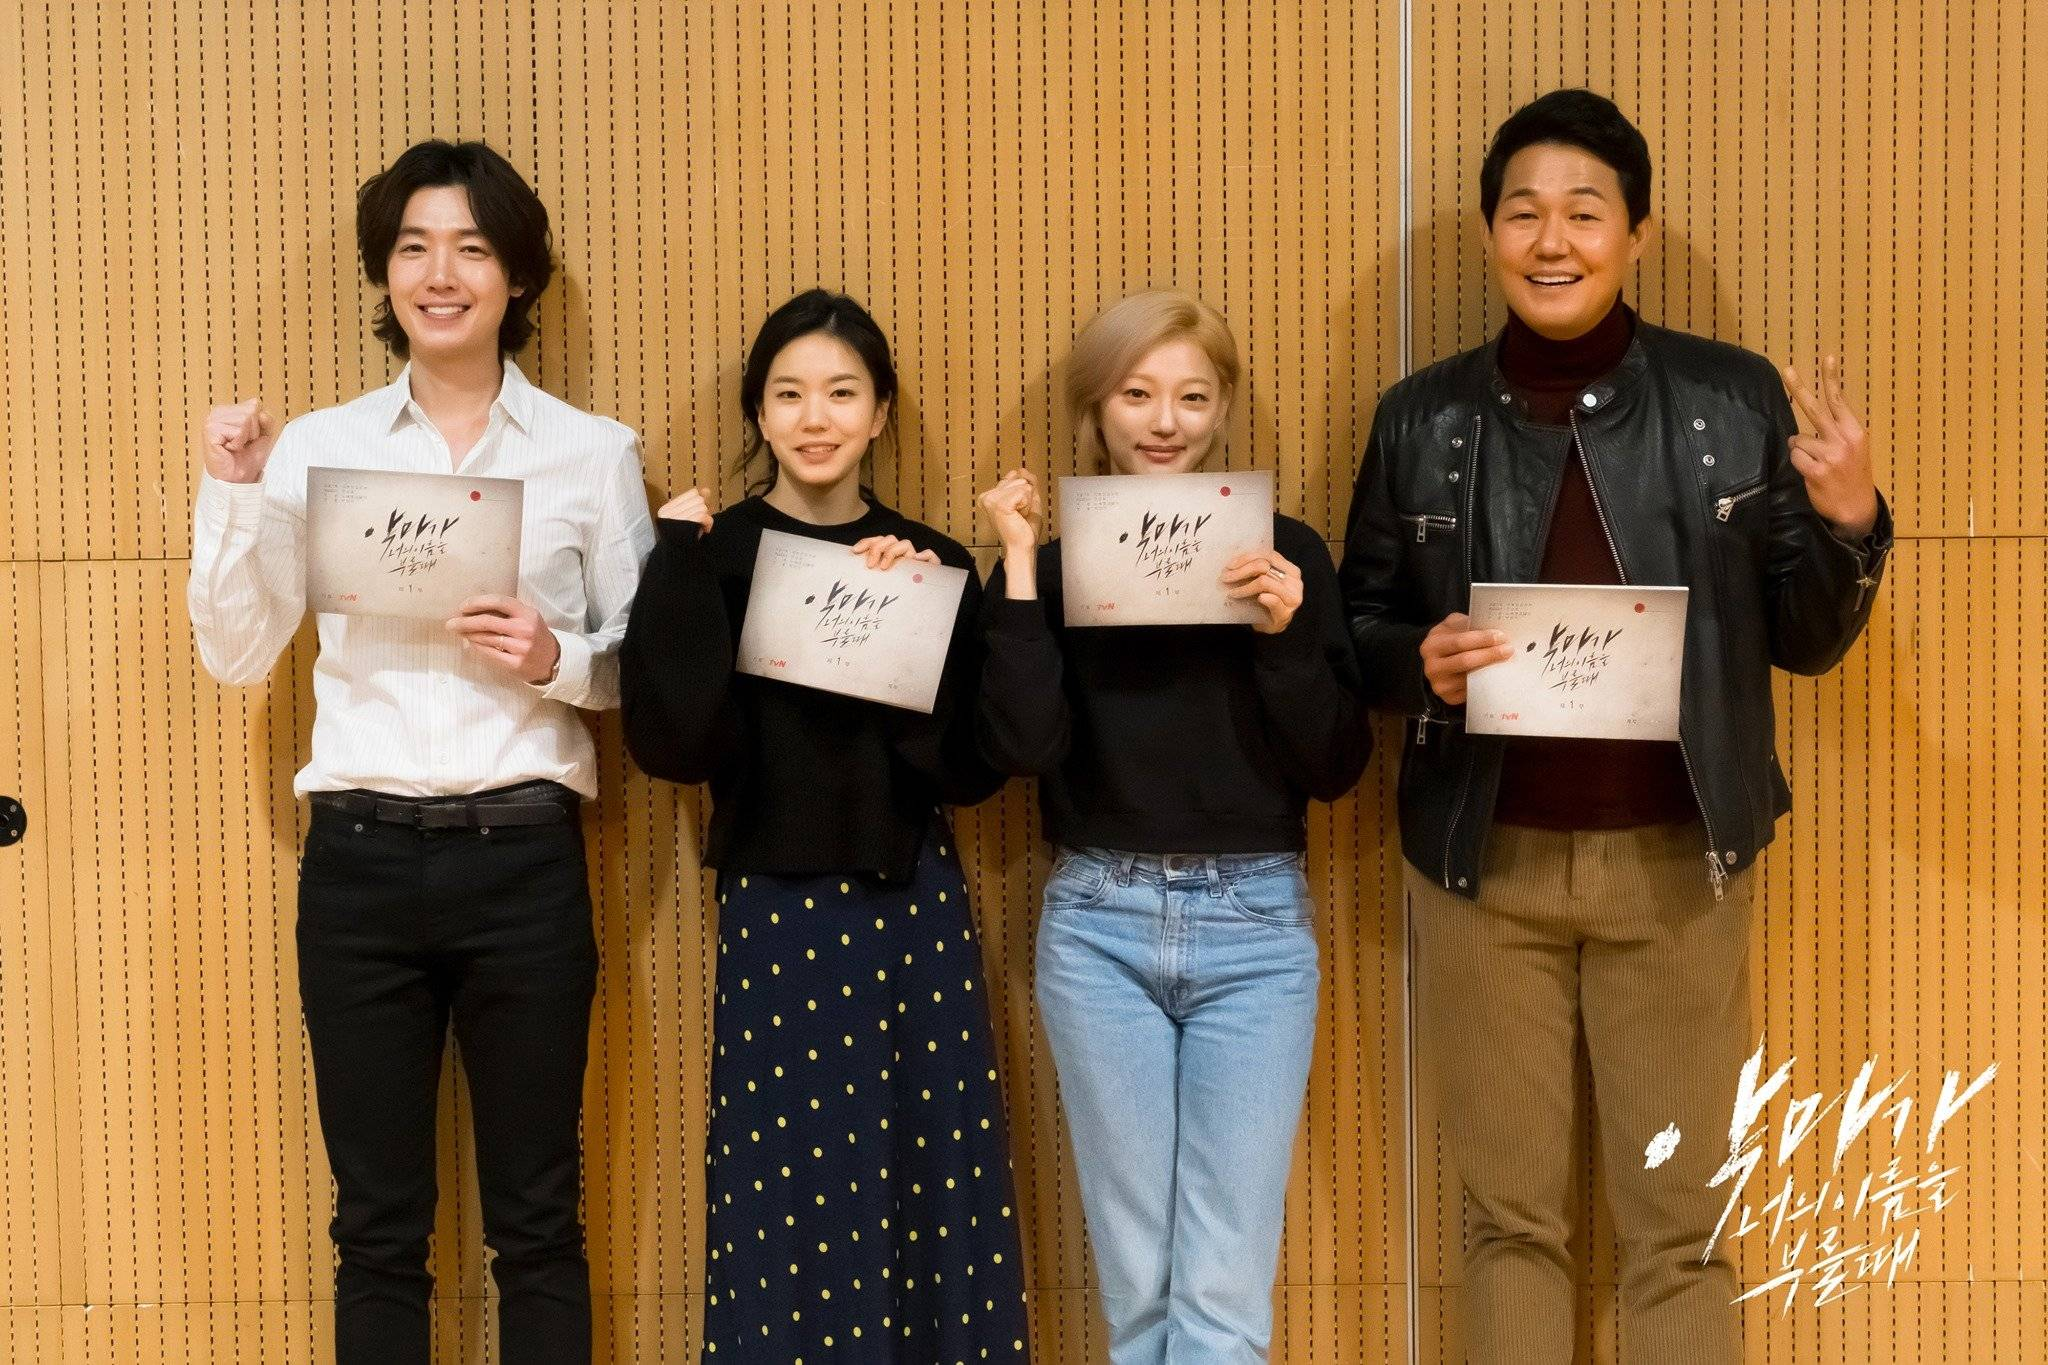 Photos New Script Reading Stills Added For The Upcoming Korean Drama When The Devil Calls Your Name Hancinema The Korean Movie And Drama Database